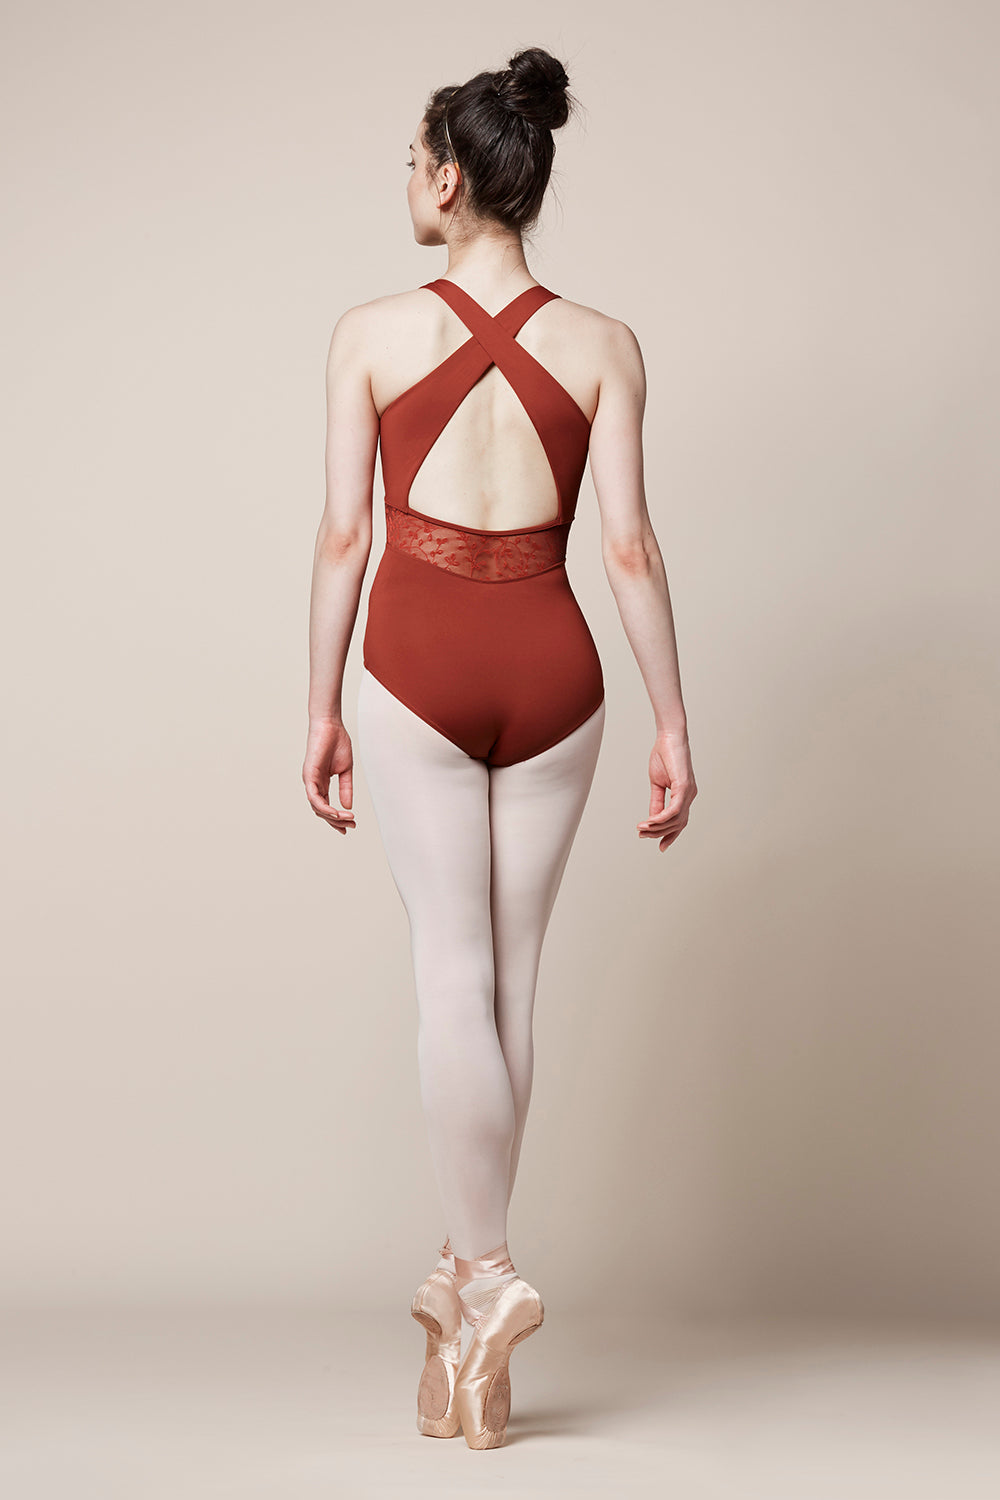 The back of a ballet dancer wearing